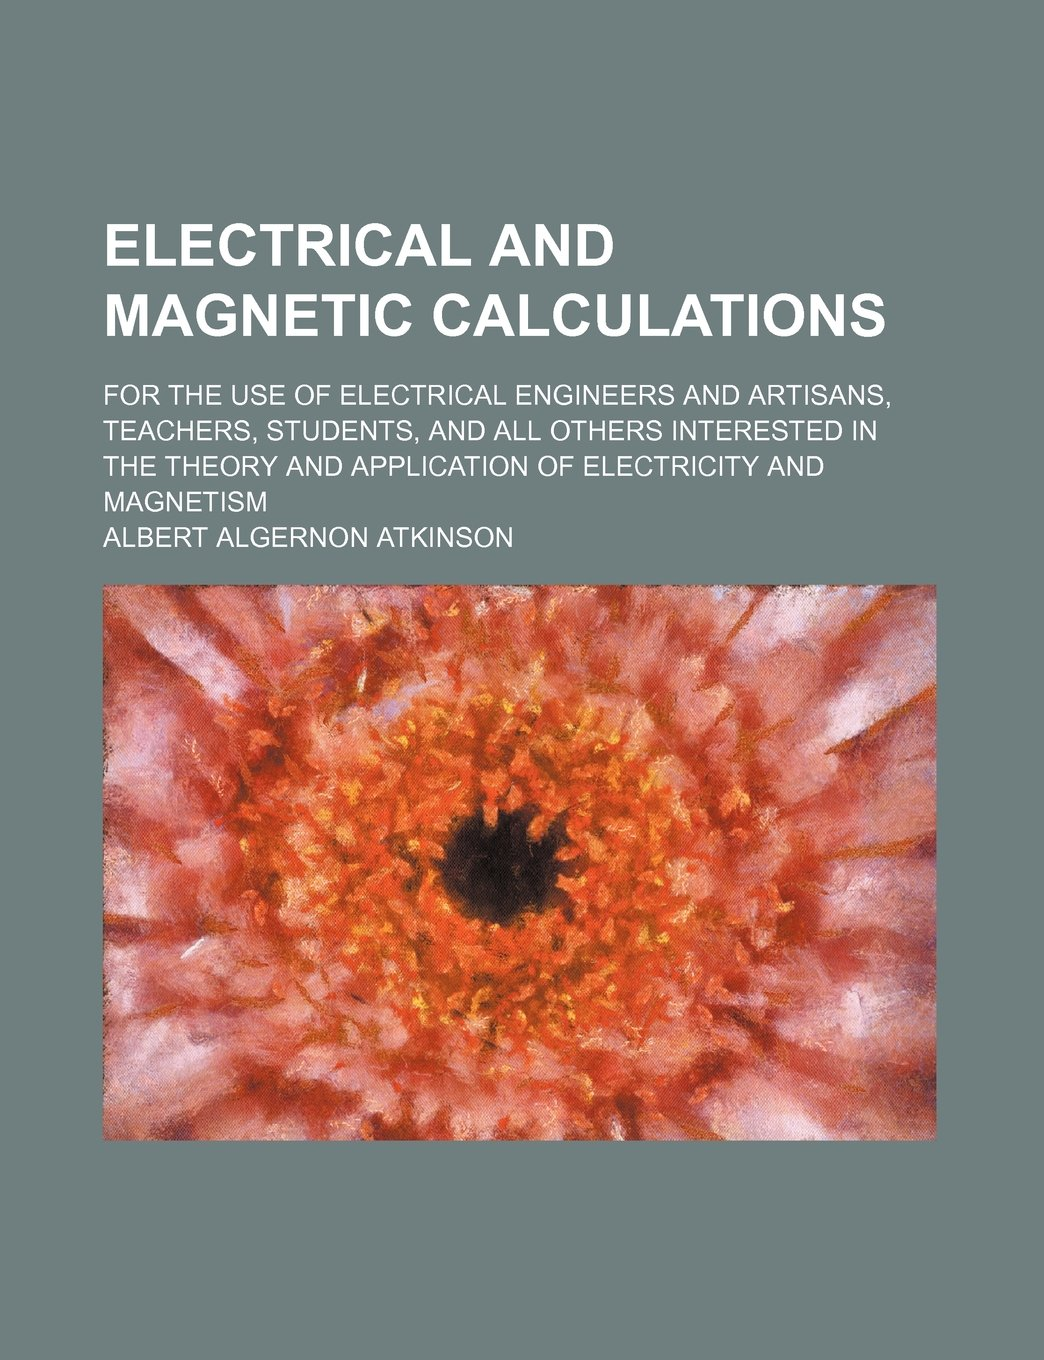 Download Electrical and magnetic calculations; for the use of electrical engineers and artisans, teachers, students, and all others interested in the theory and application of electricity and magnetism PDF